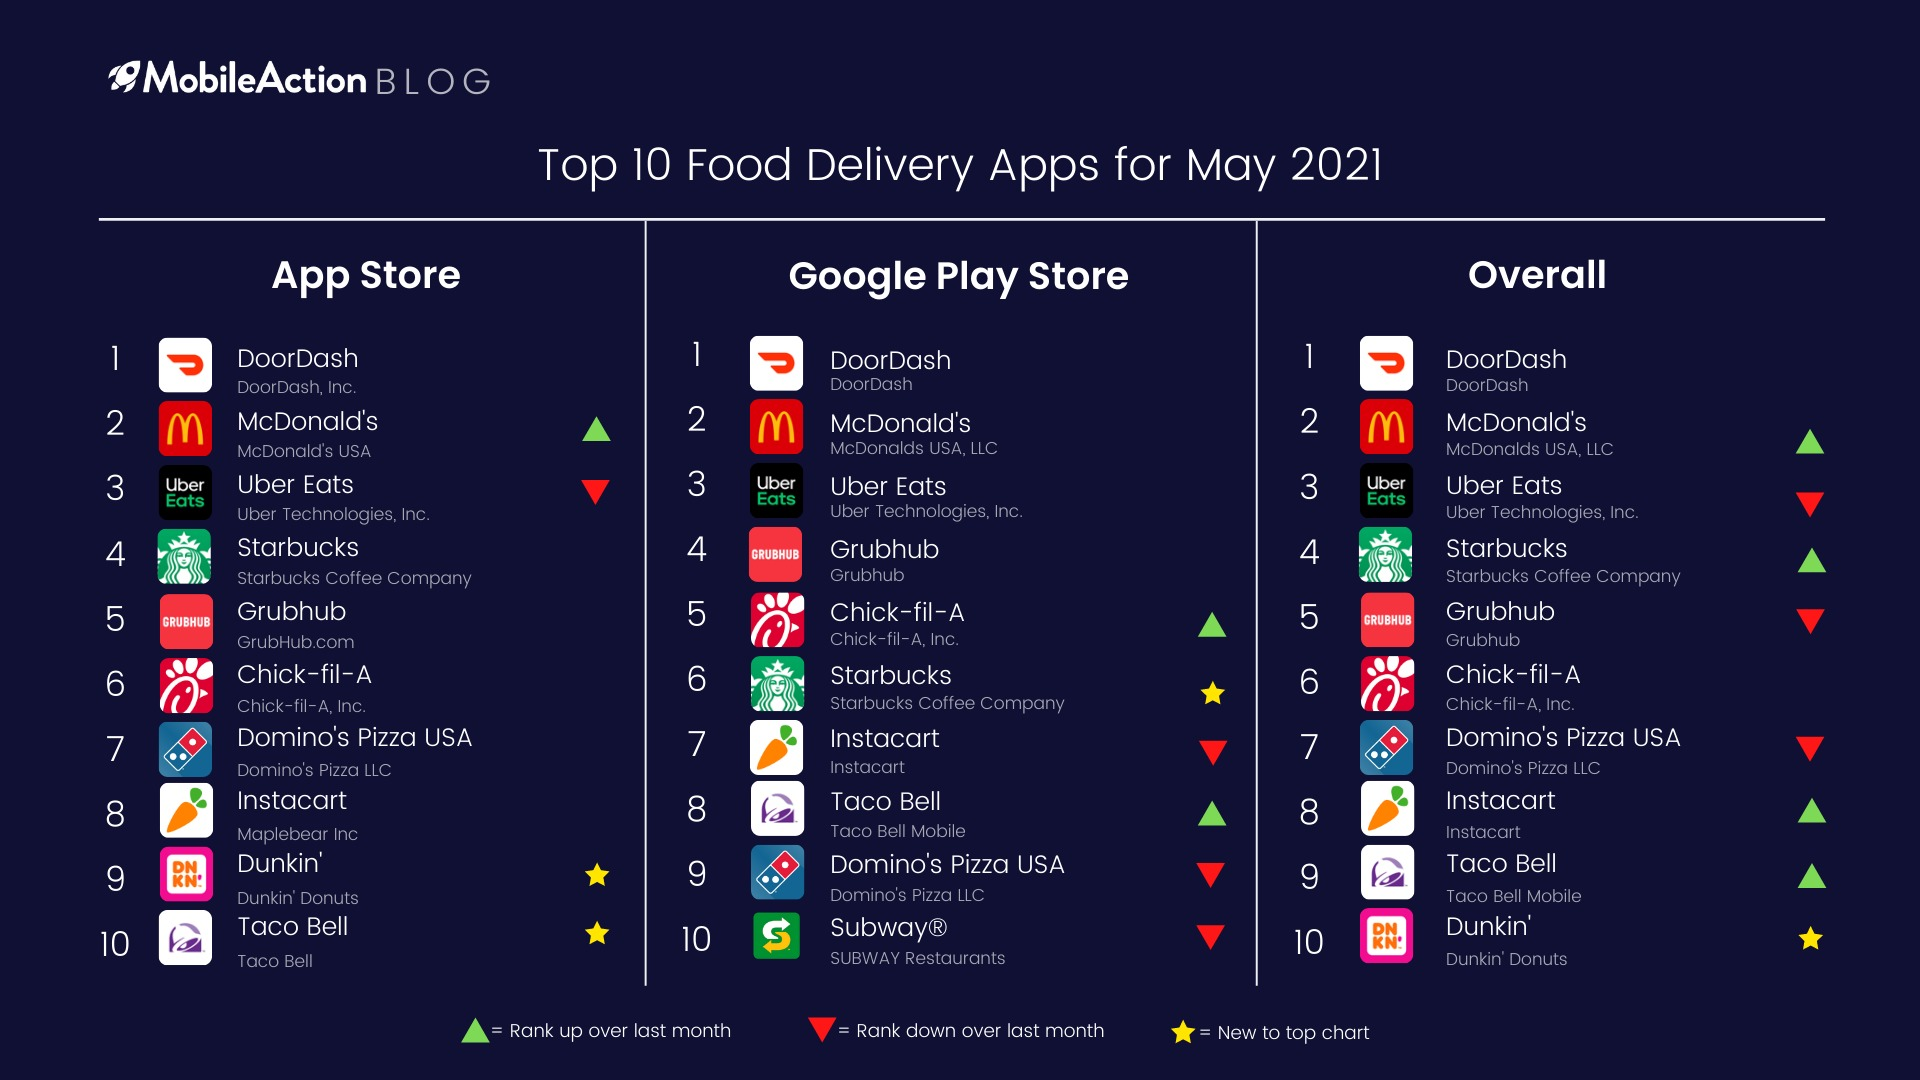 Top 10 Food Delivery Apps May 2021